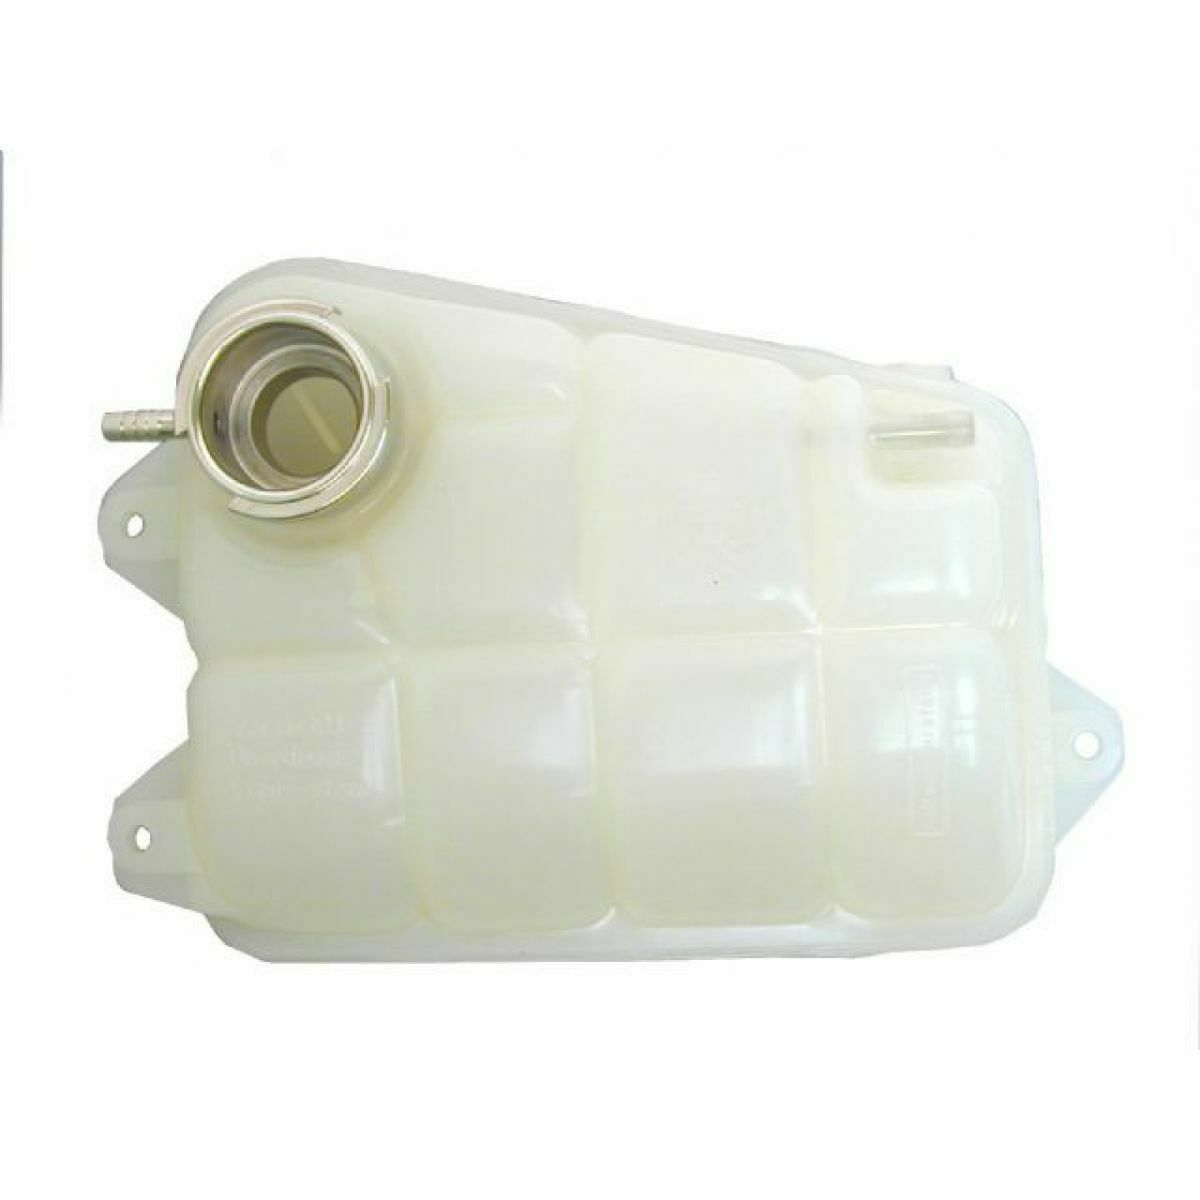 Radiator Coolant Overflow Expansion Tank Bottle Reservoir For Bleeder Screw Nissan Tiida 1 Of 1only 3 Available